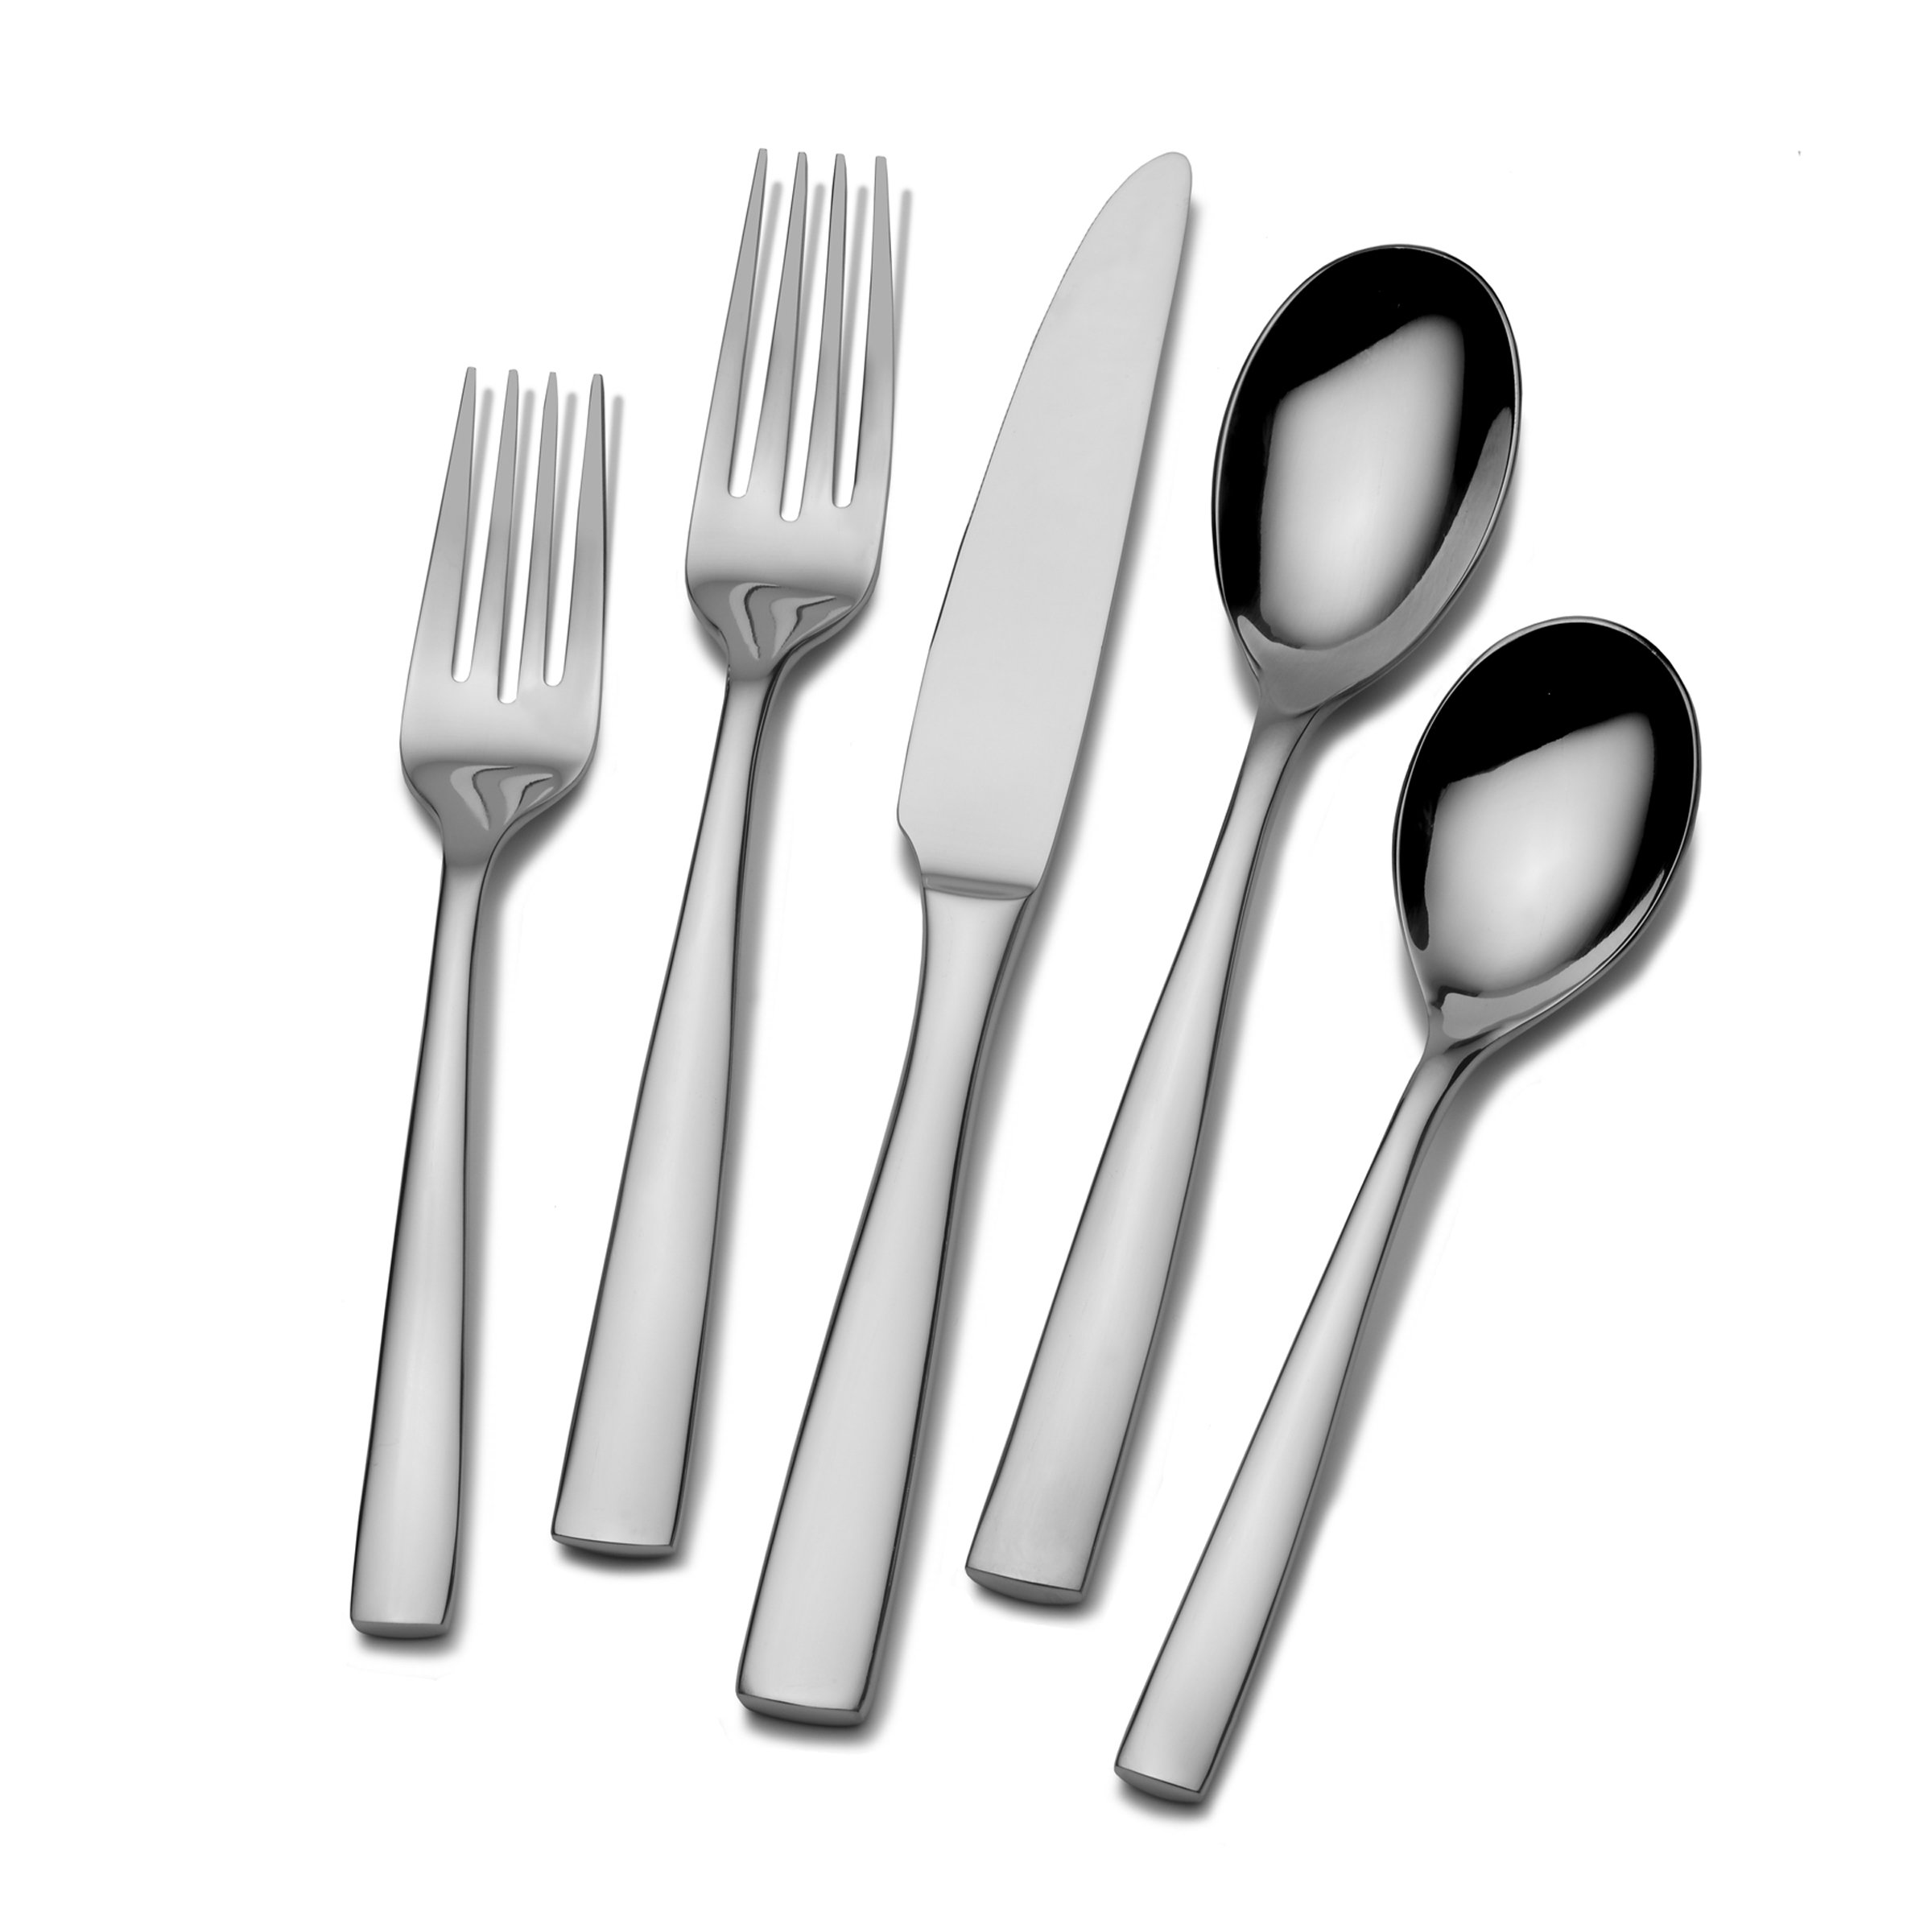 Mikasa 5084358 Delano 20-Piece Stainless Steel Flatware Set, Service for 4 by Mikasa (Image #1)